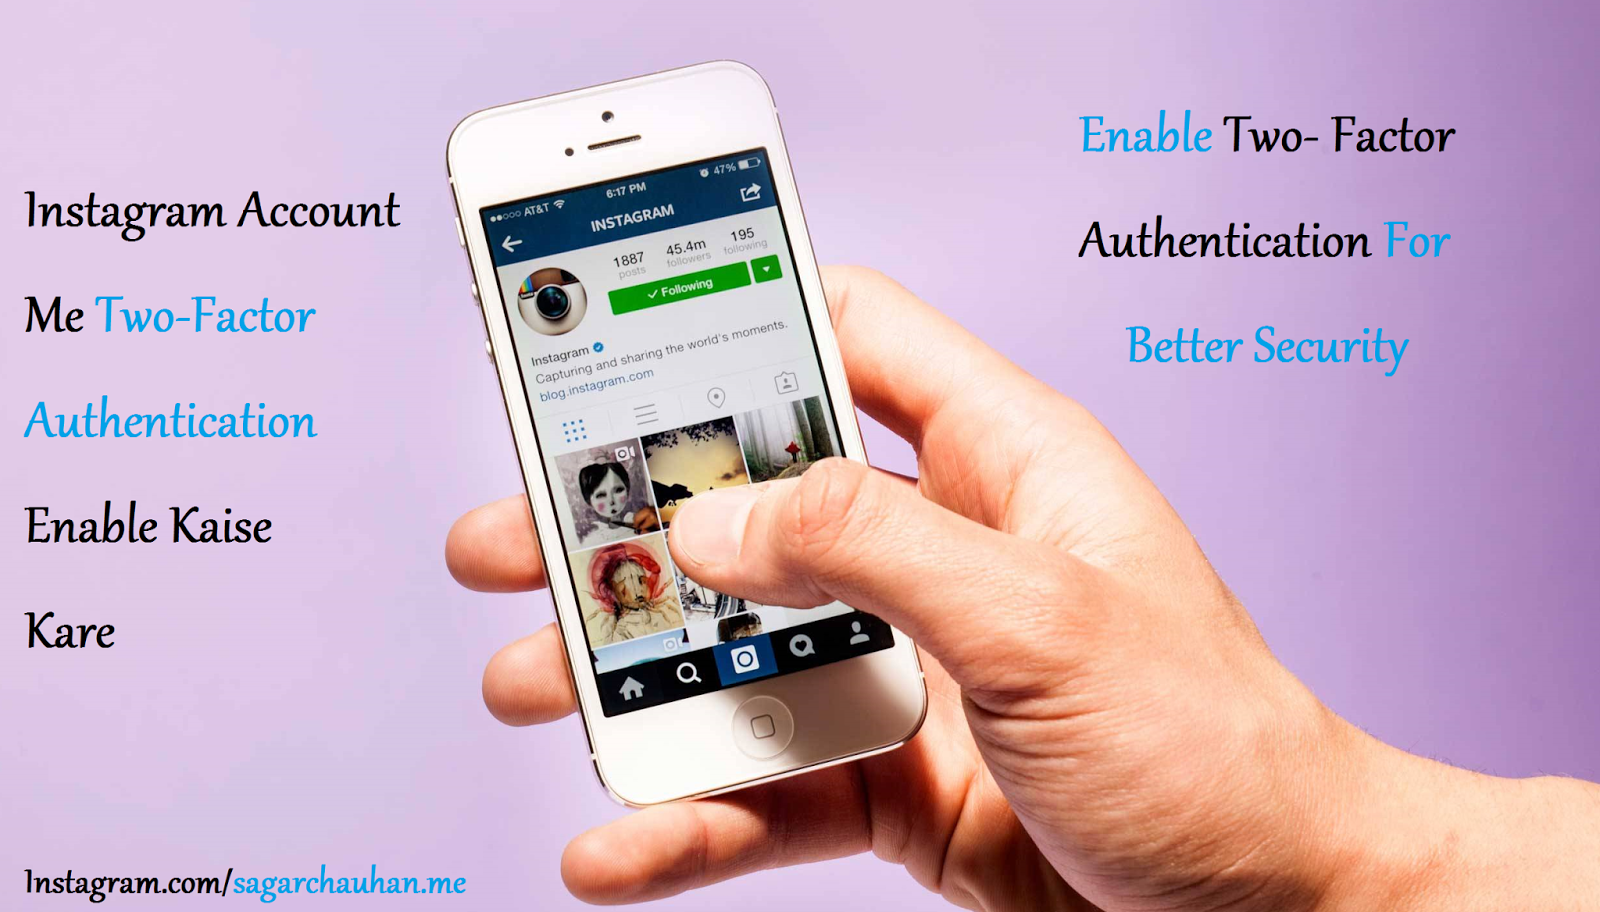 Instagram Account Me Two-Factor Authentication Enable Kaise kare